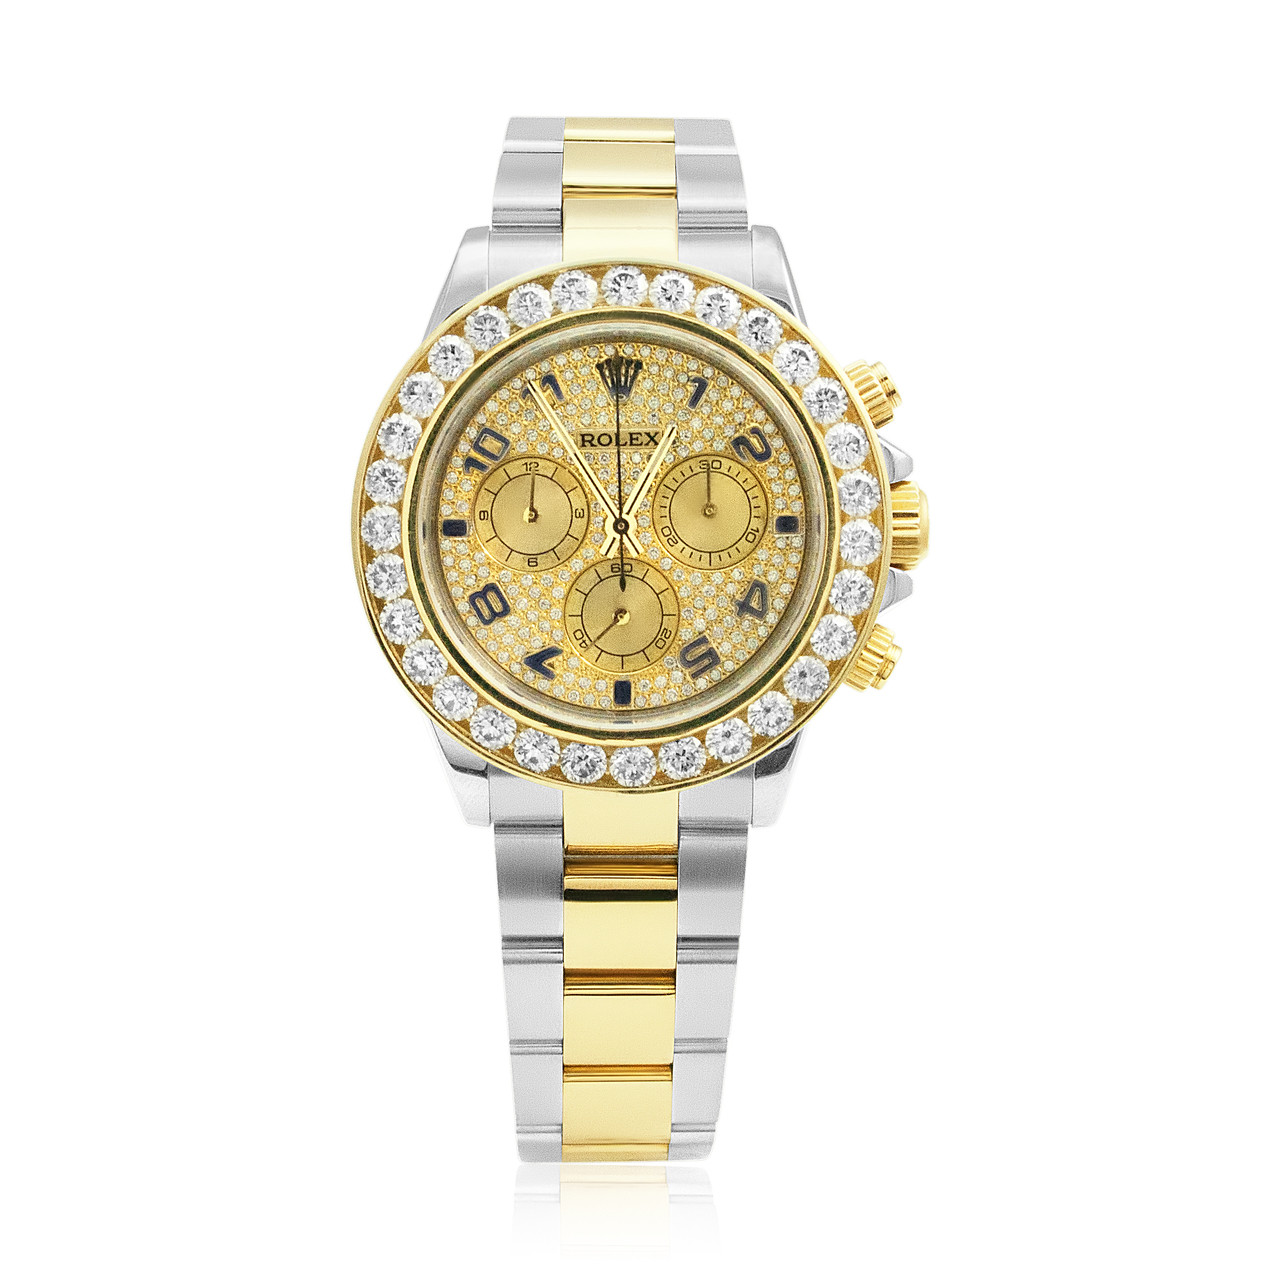 Rolex Cosmograph Daytona Stainless Steel 18k Gold Diamond Automatic Men S Watch 116523